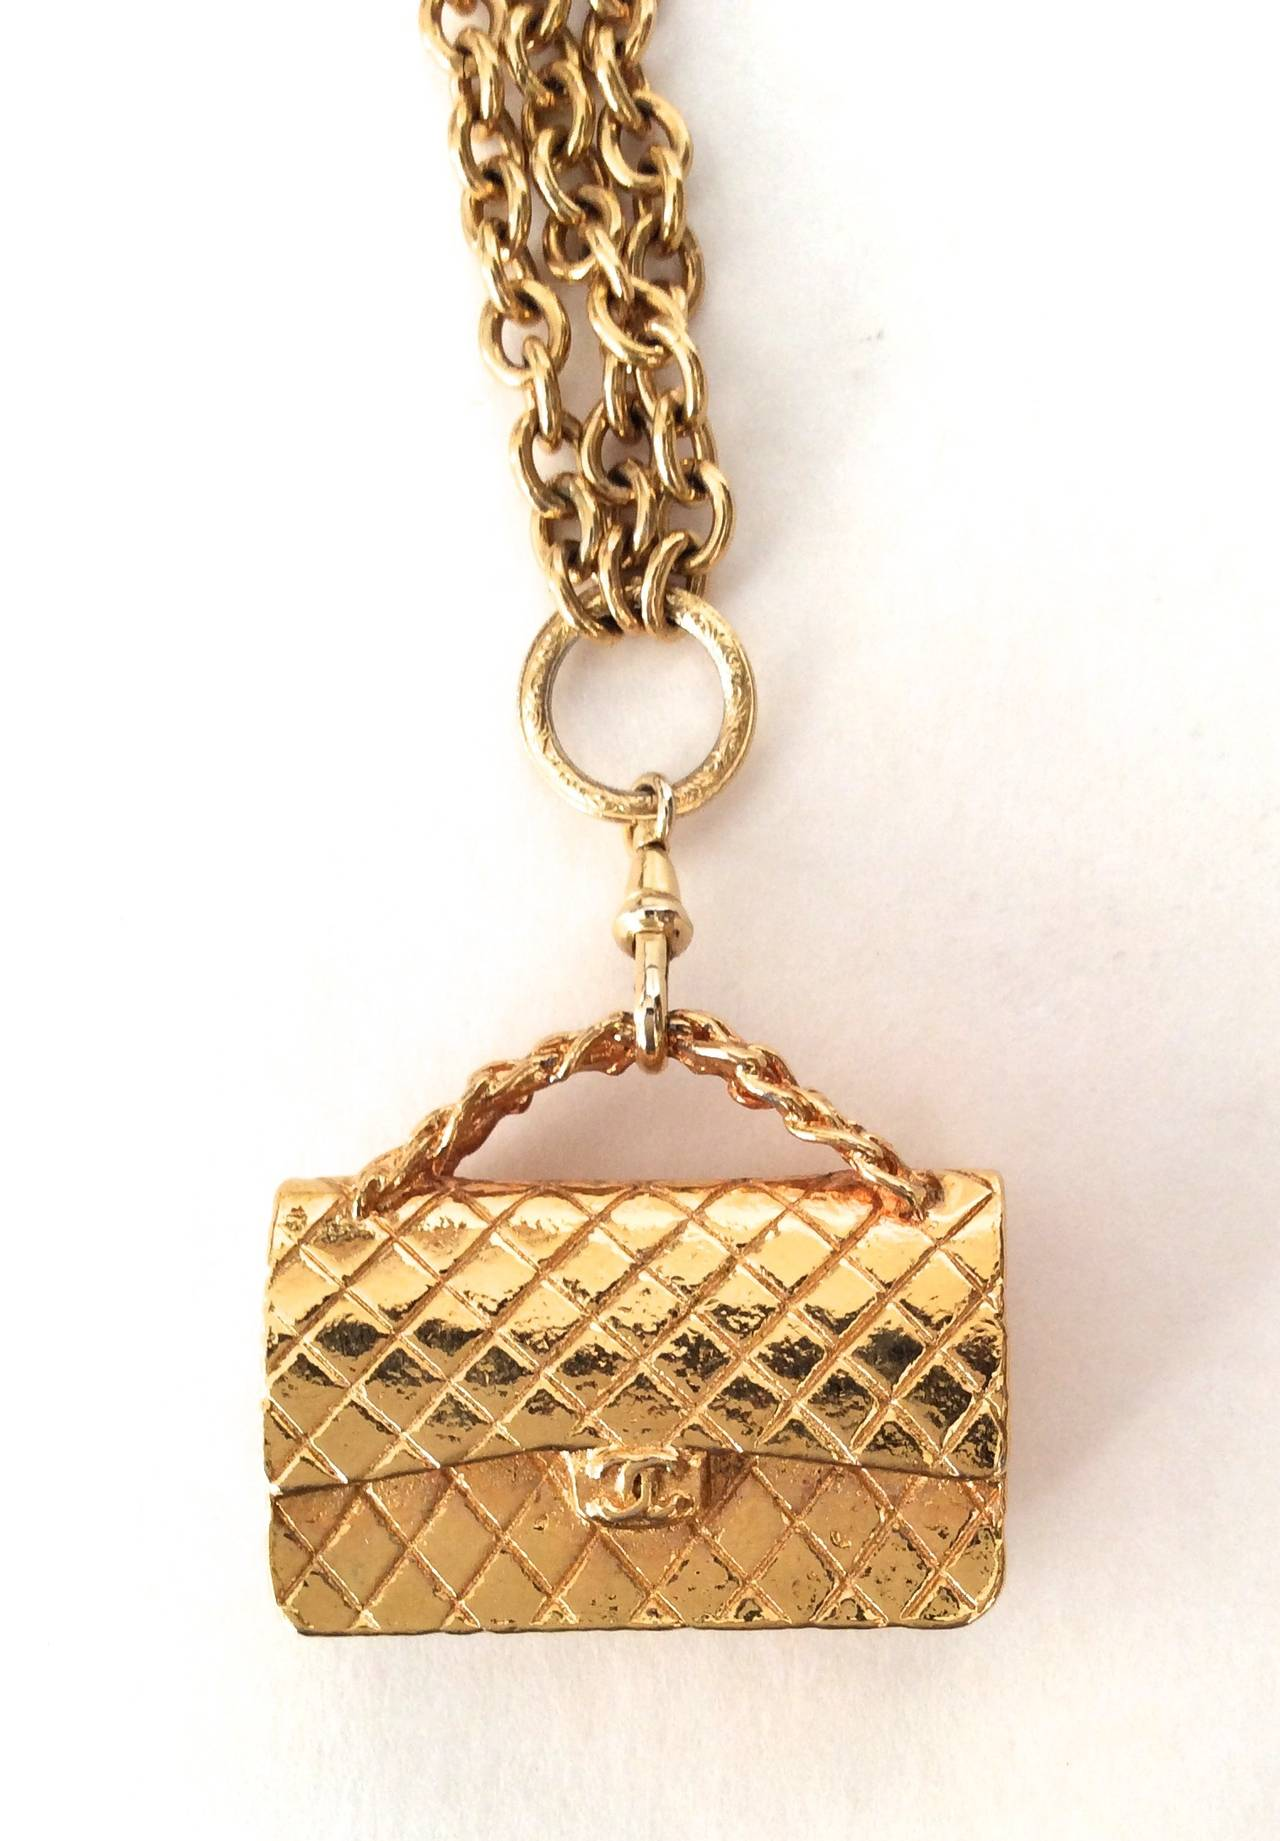 Gold Tone Chanel Triple Chain Necklace with Iconic Purse Pendant 5